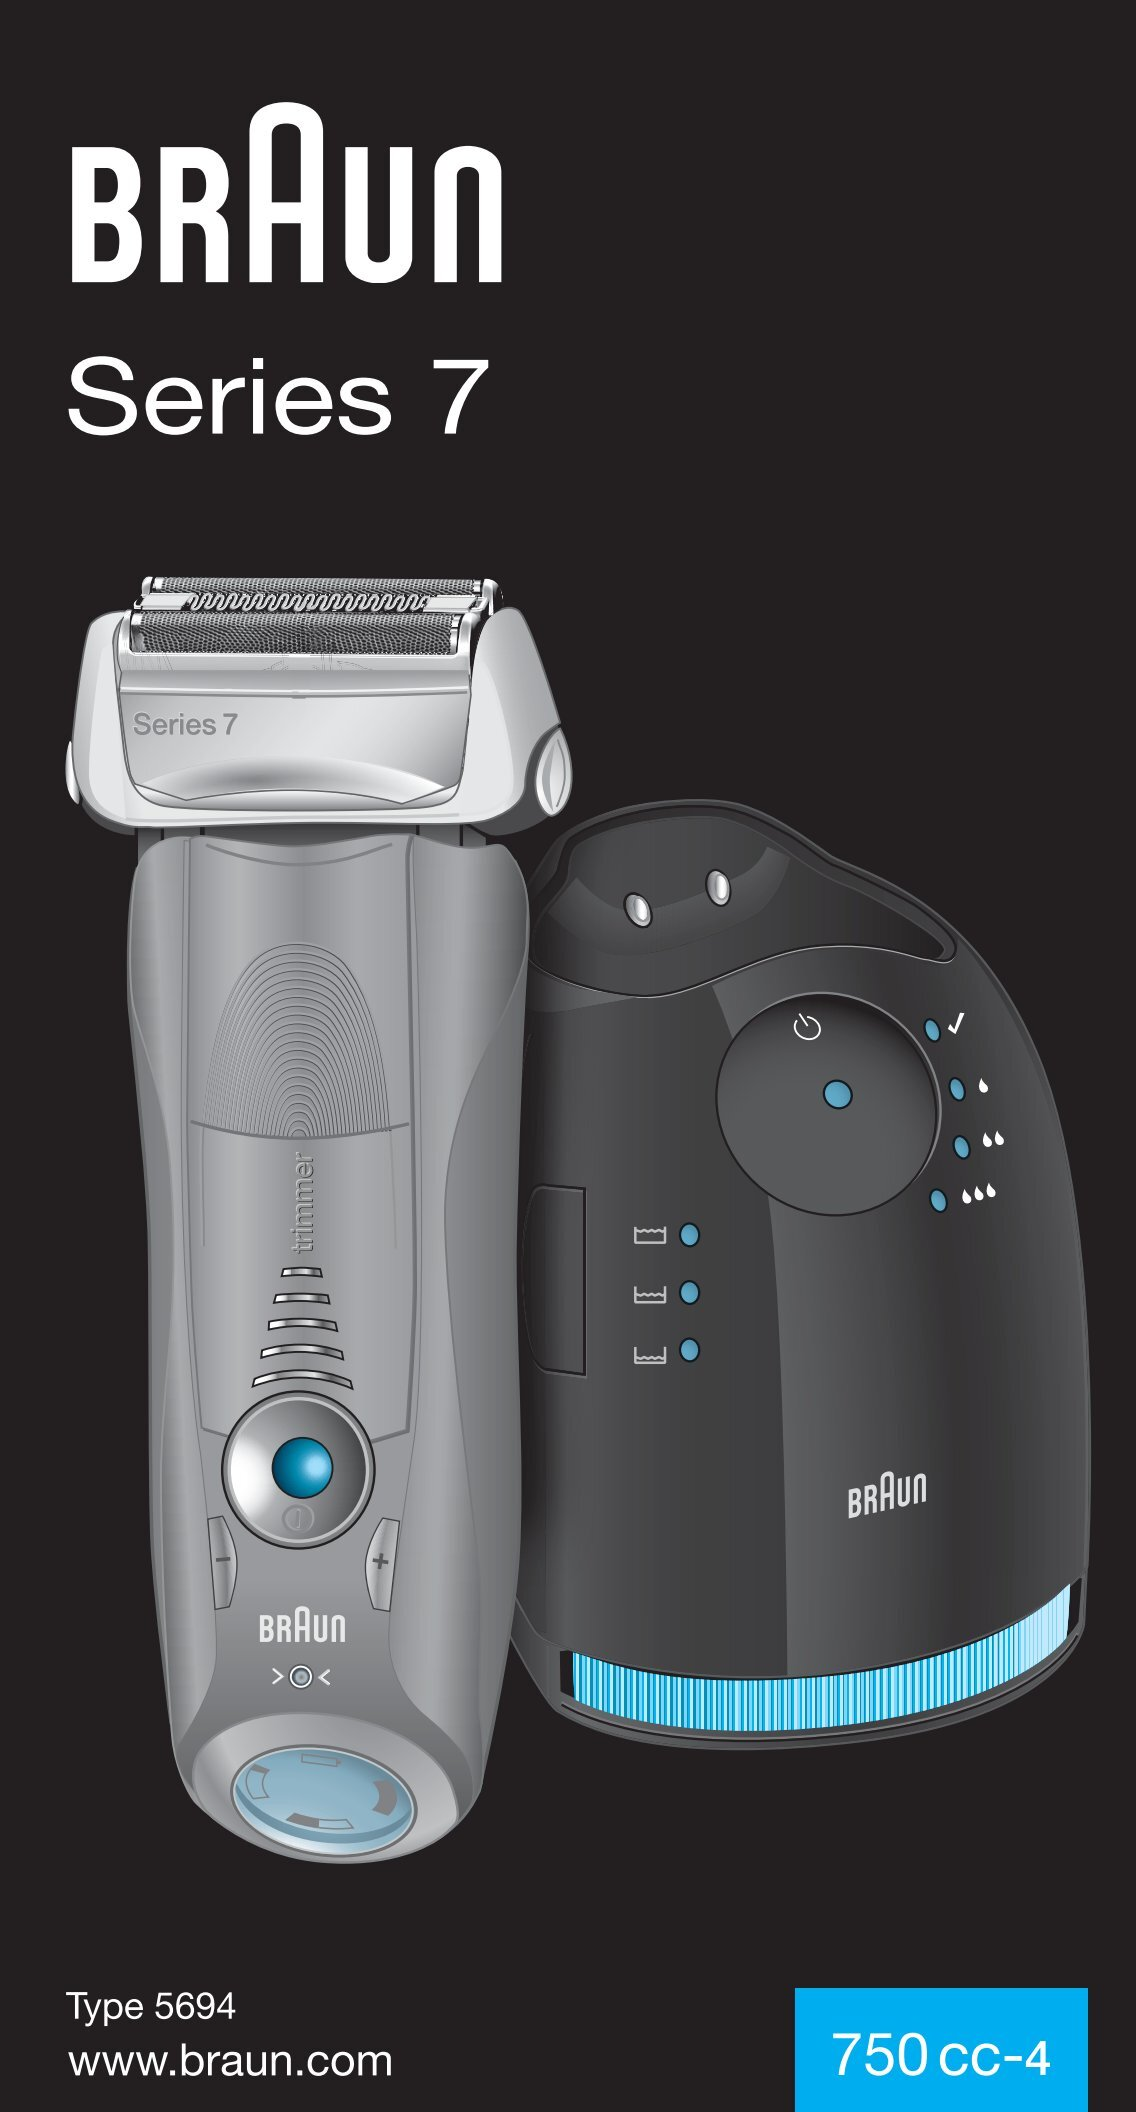 braun series 7 user manual